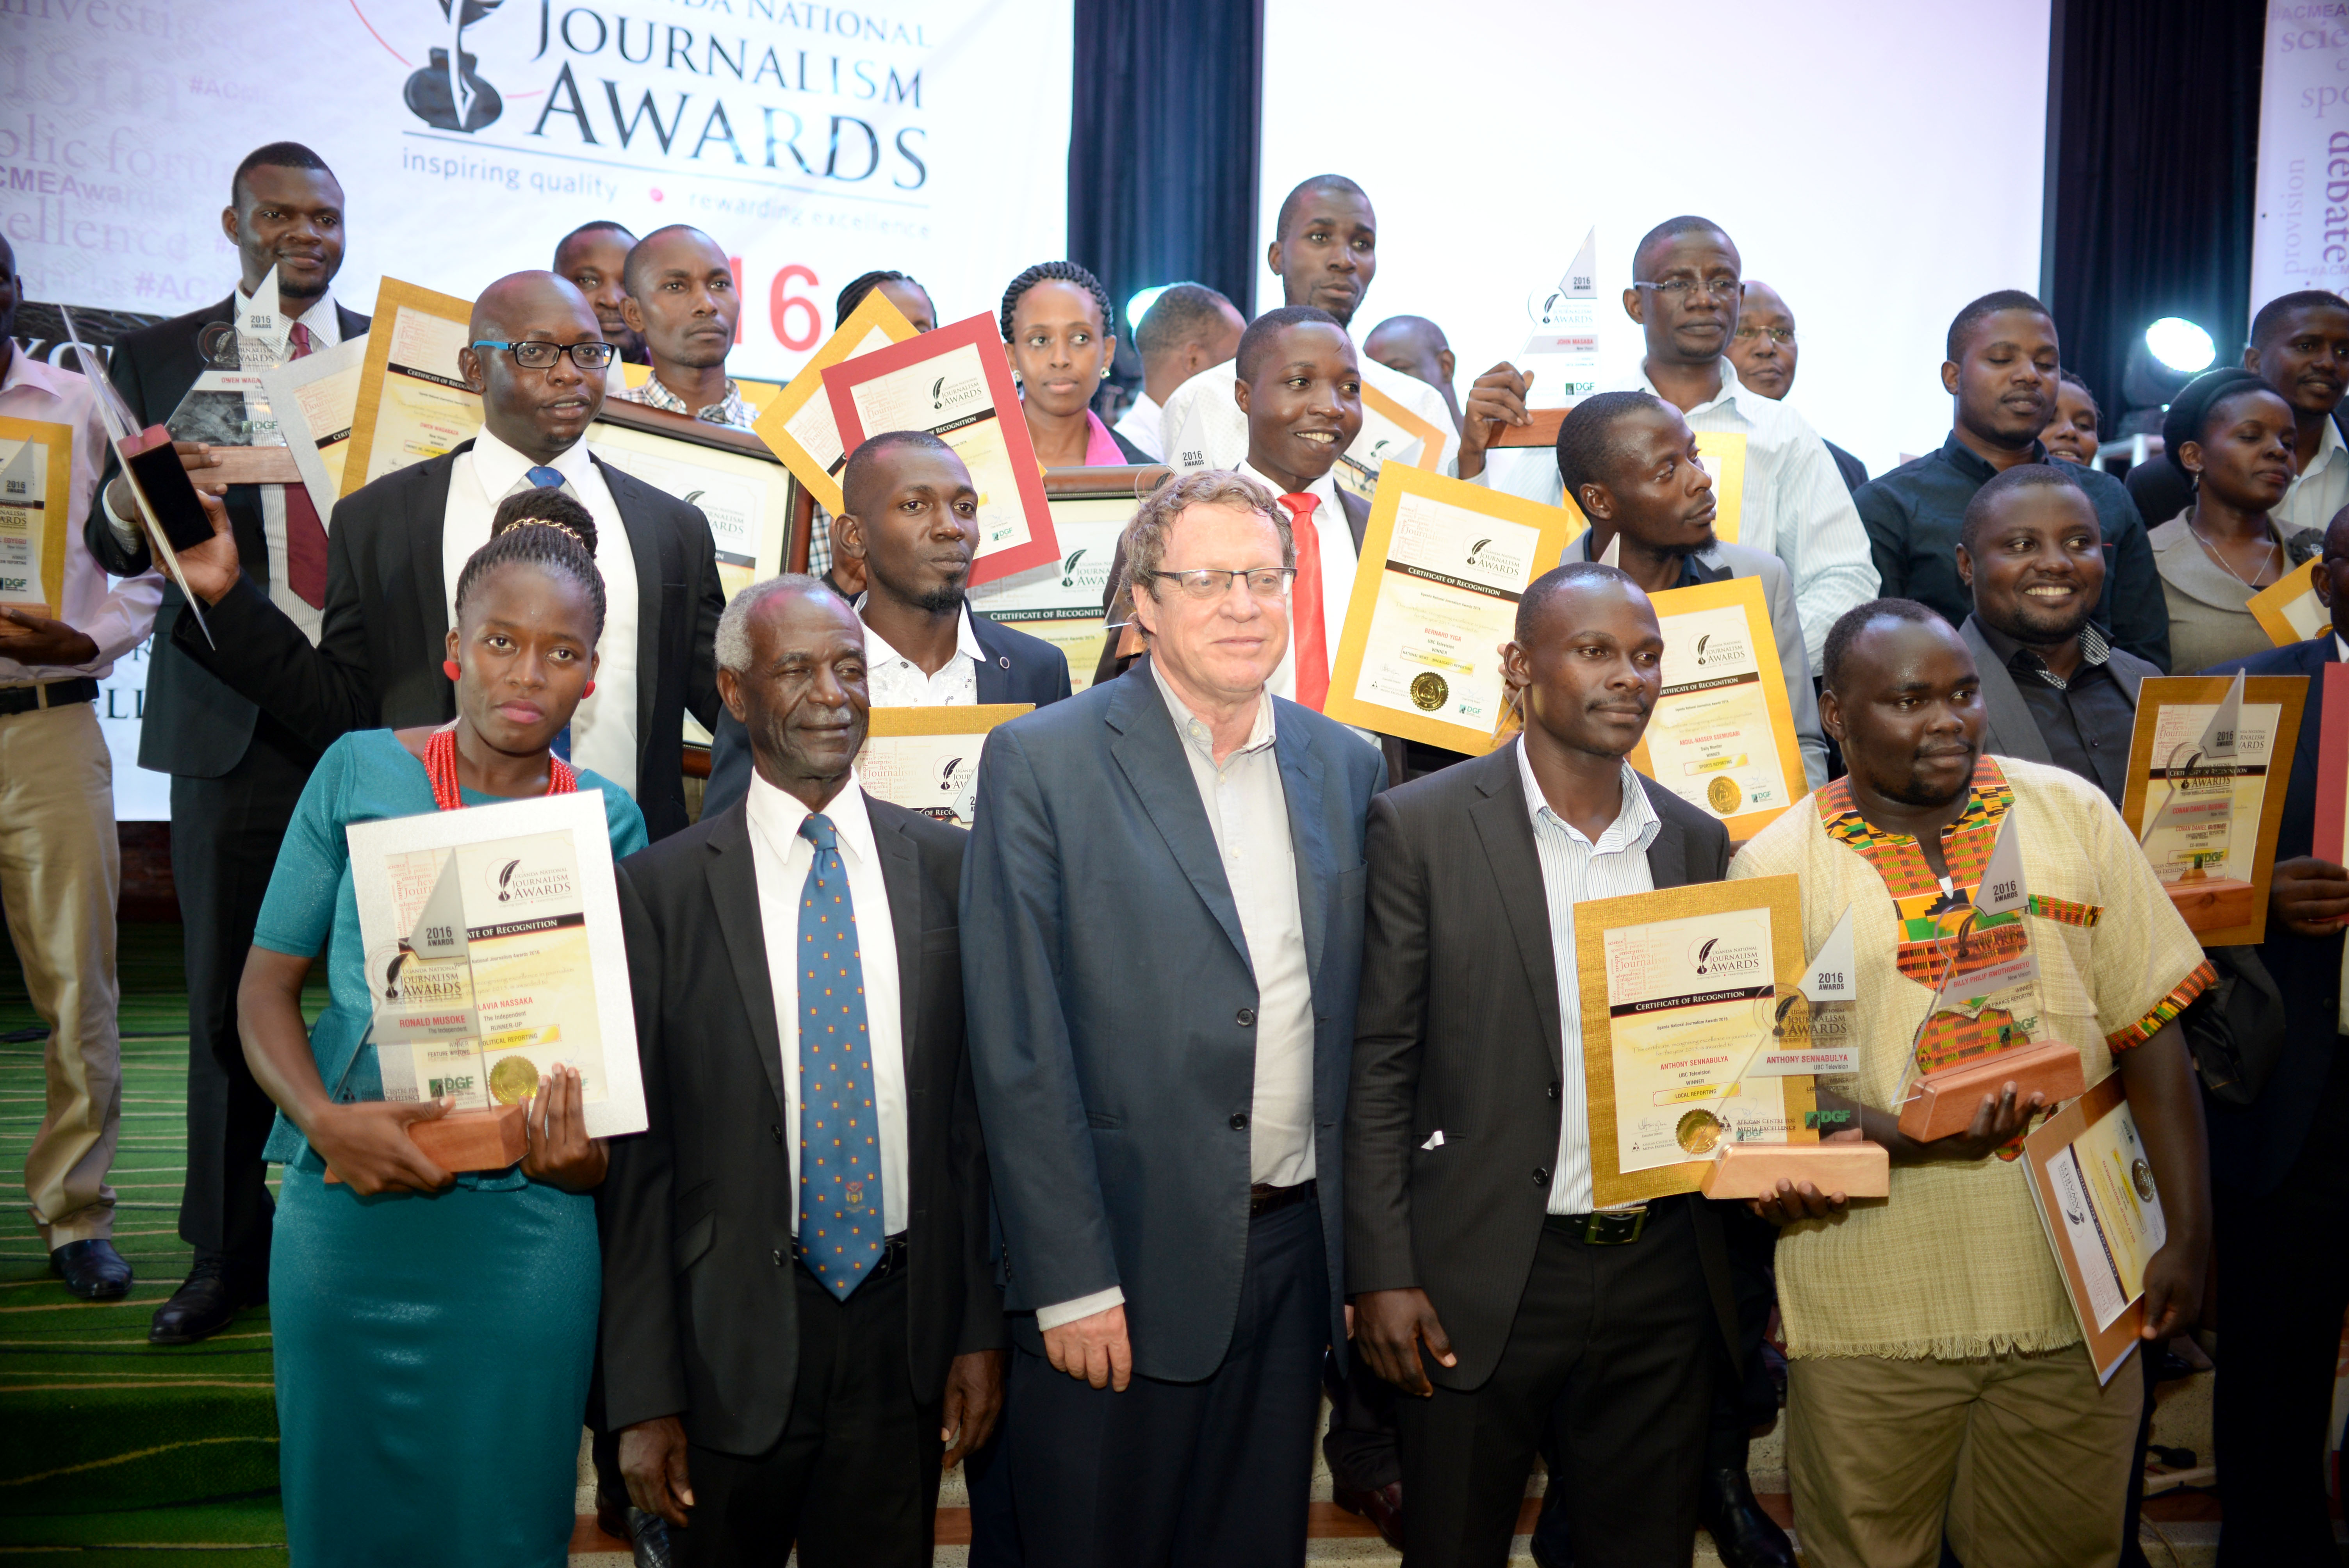 Uganda National Journalism Awards